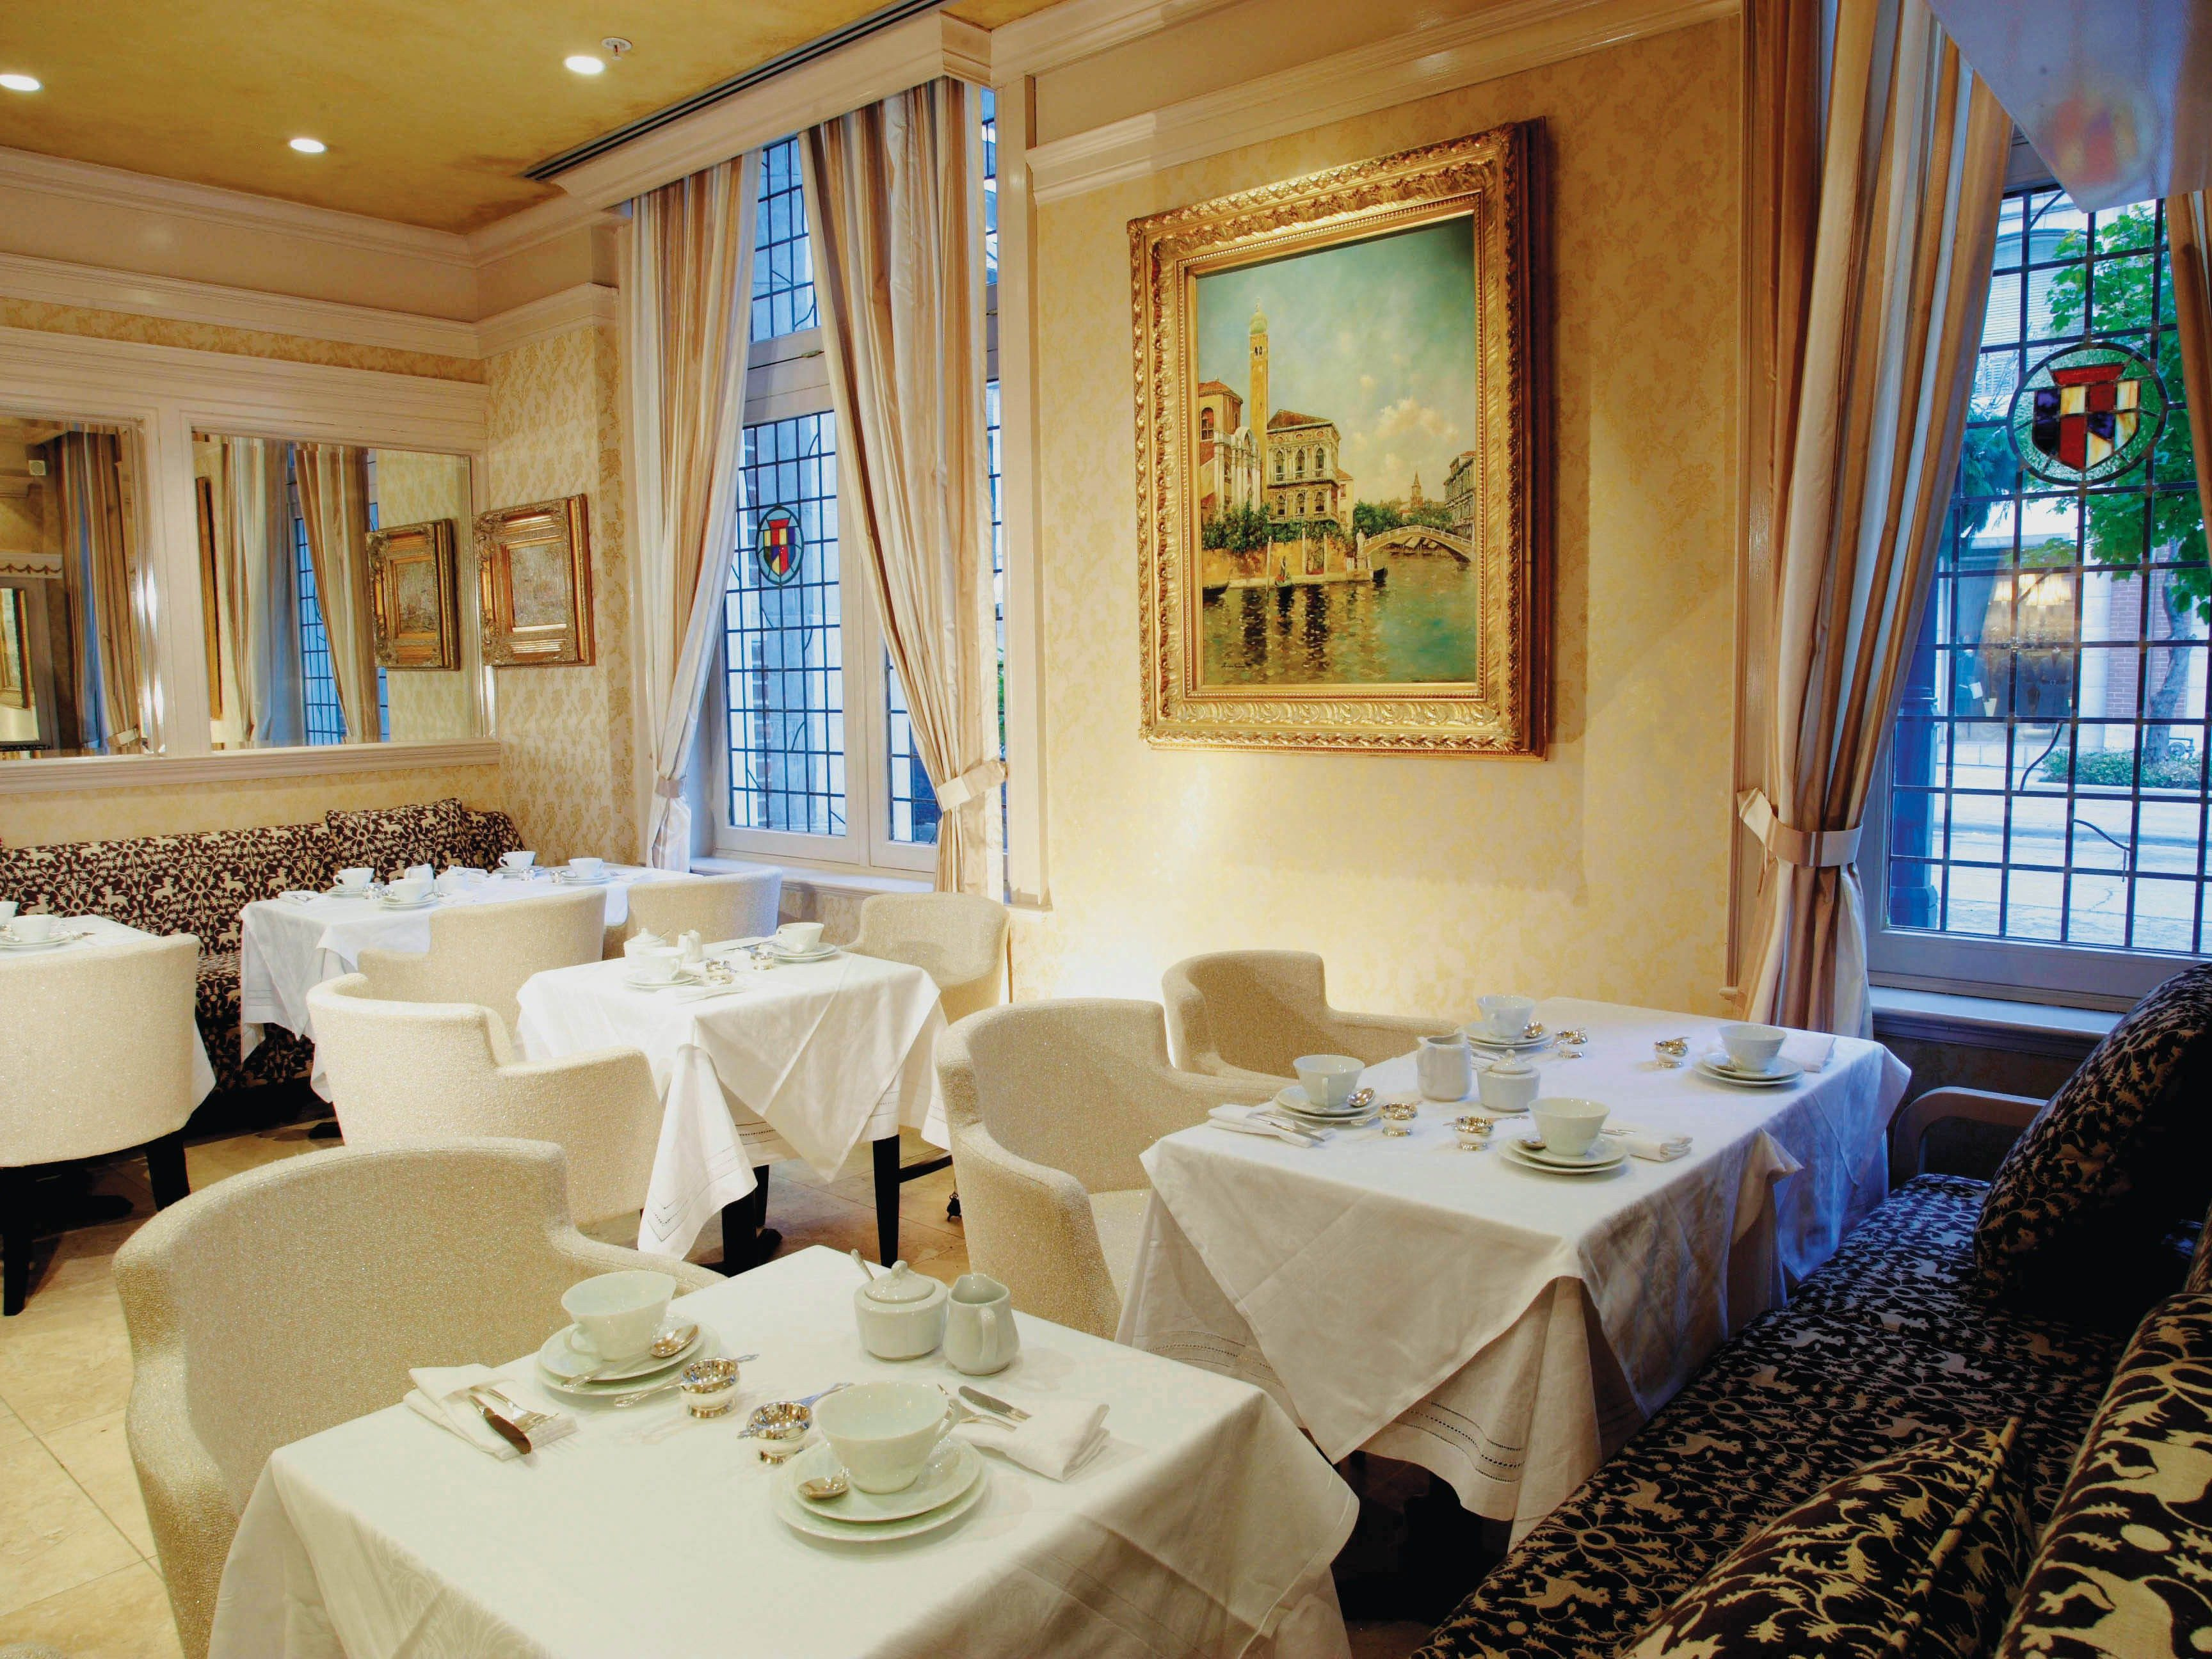 8. High tea at the Windsor Arms Hotel